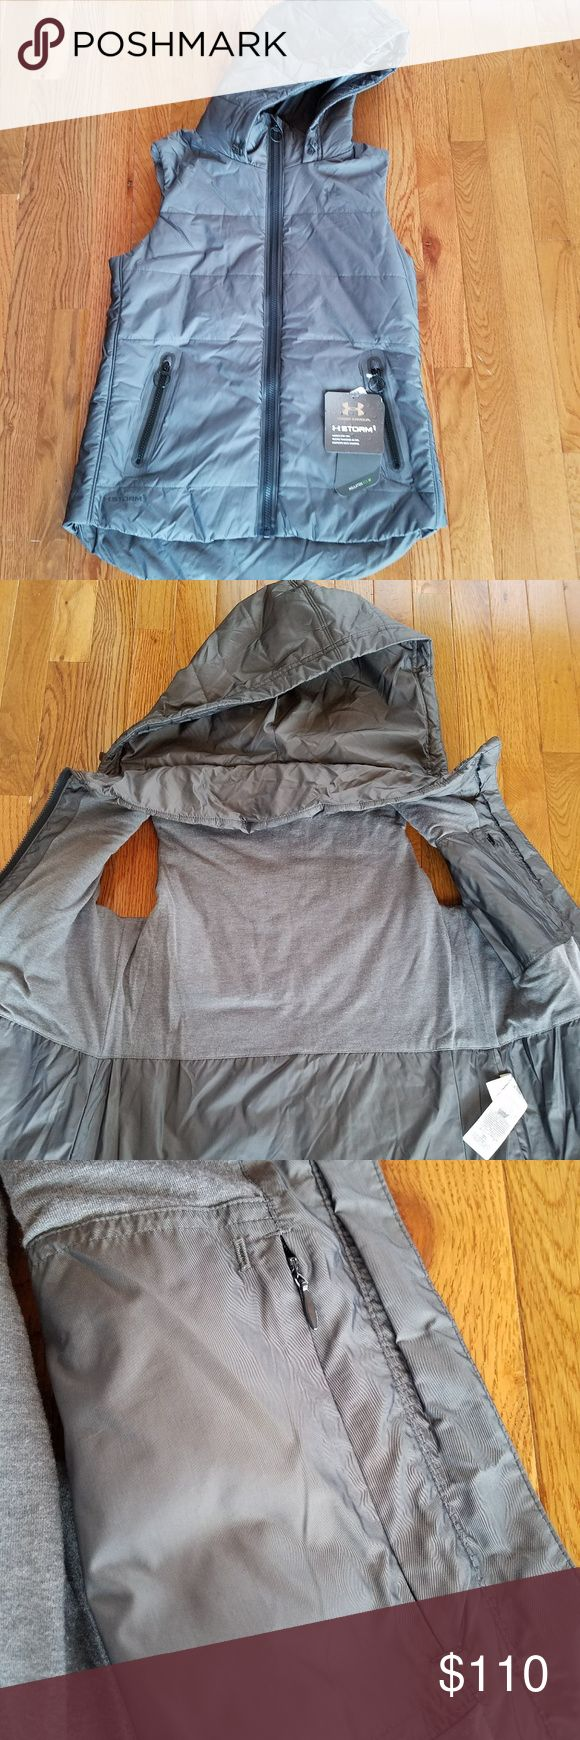 Under Armour Women's Outdoor Vest, Small Under Armour Women's Outdoor Vest, Brand New with tags attached, never been worn. Full zipper with fabric protector at the top; zips to turtleneck style when fully zipped. Size small, loose fit, dark grey. Two zippered hand pockets and one zippered pocket on inside panel. Hood has adjustable bungee cord. Water resistant material to help you stay dry. Primaloft Insulation Eco - warmth without bulk, breathable, superior softness and lightweight comfort,